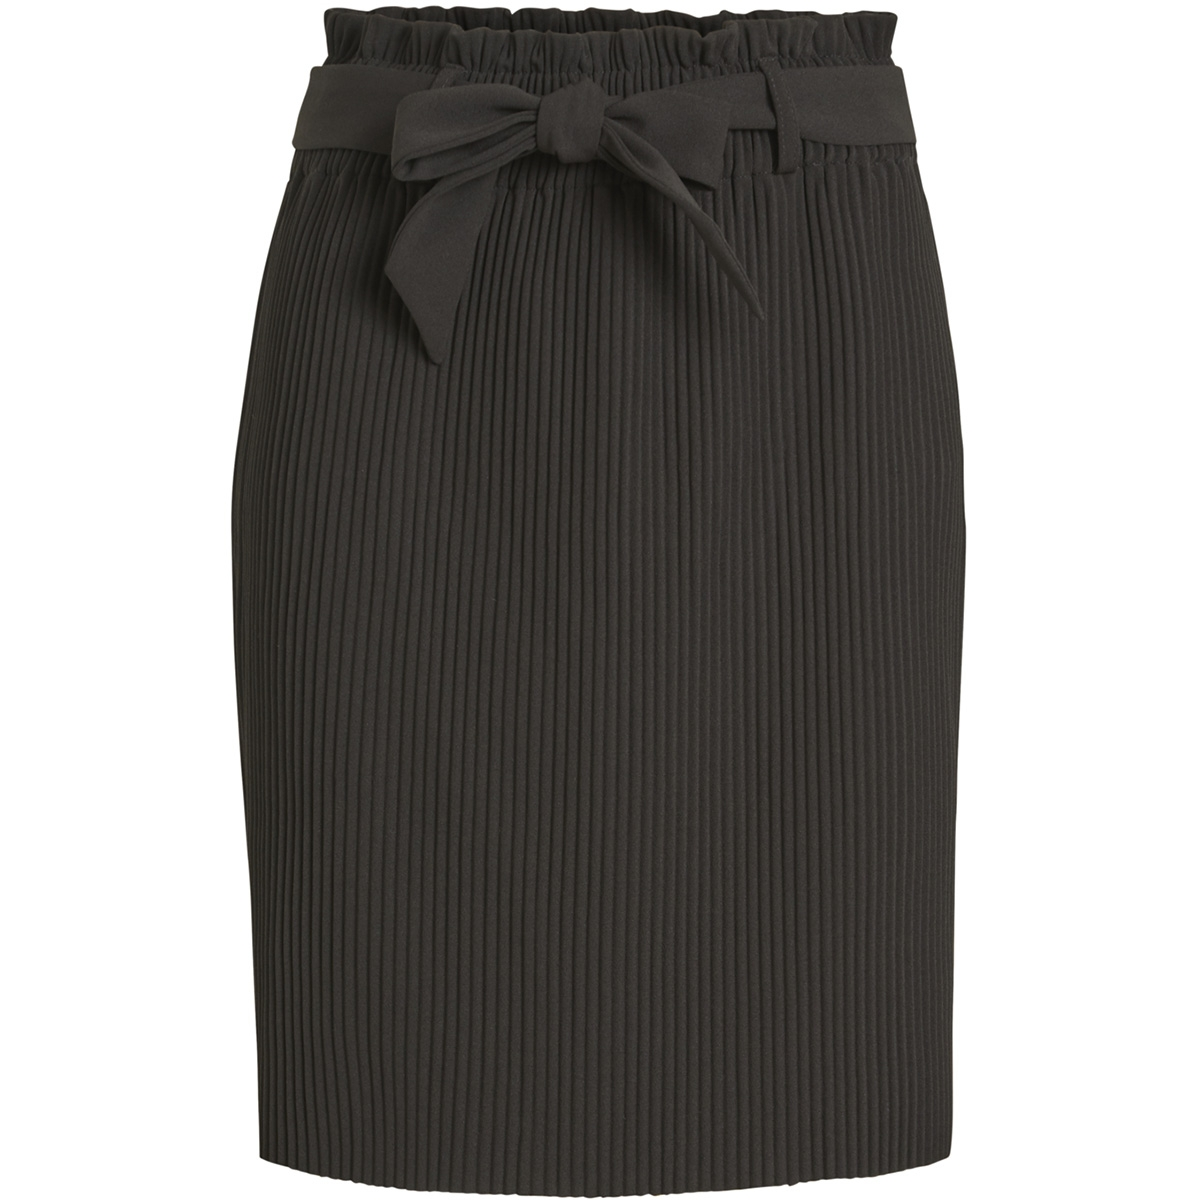 objraisa hw plissé skirt a rep 23028260 object rok black